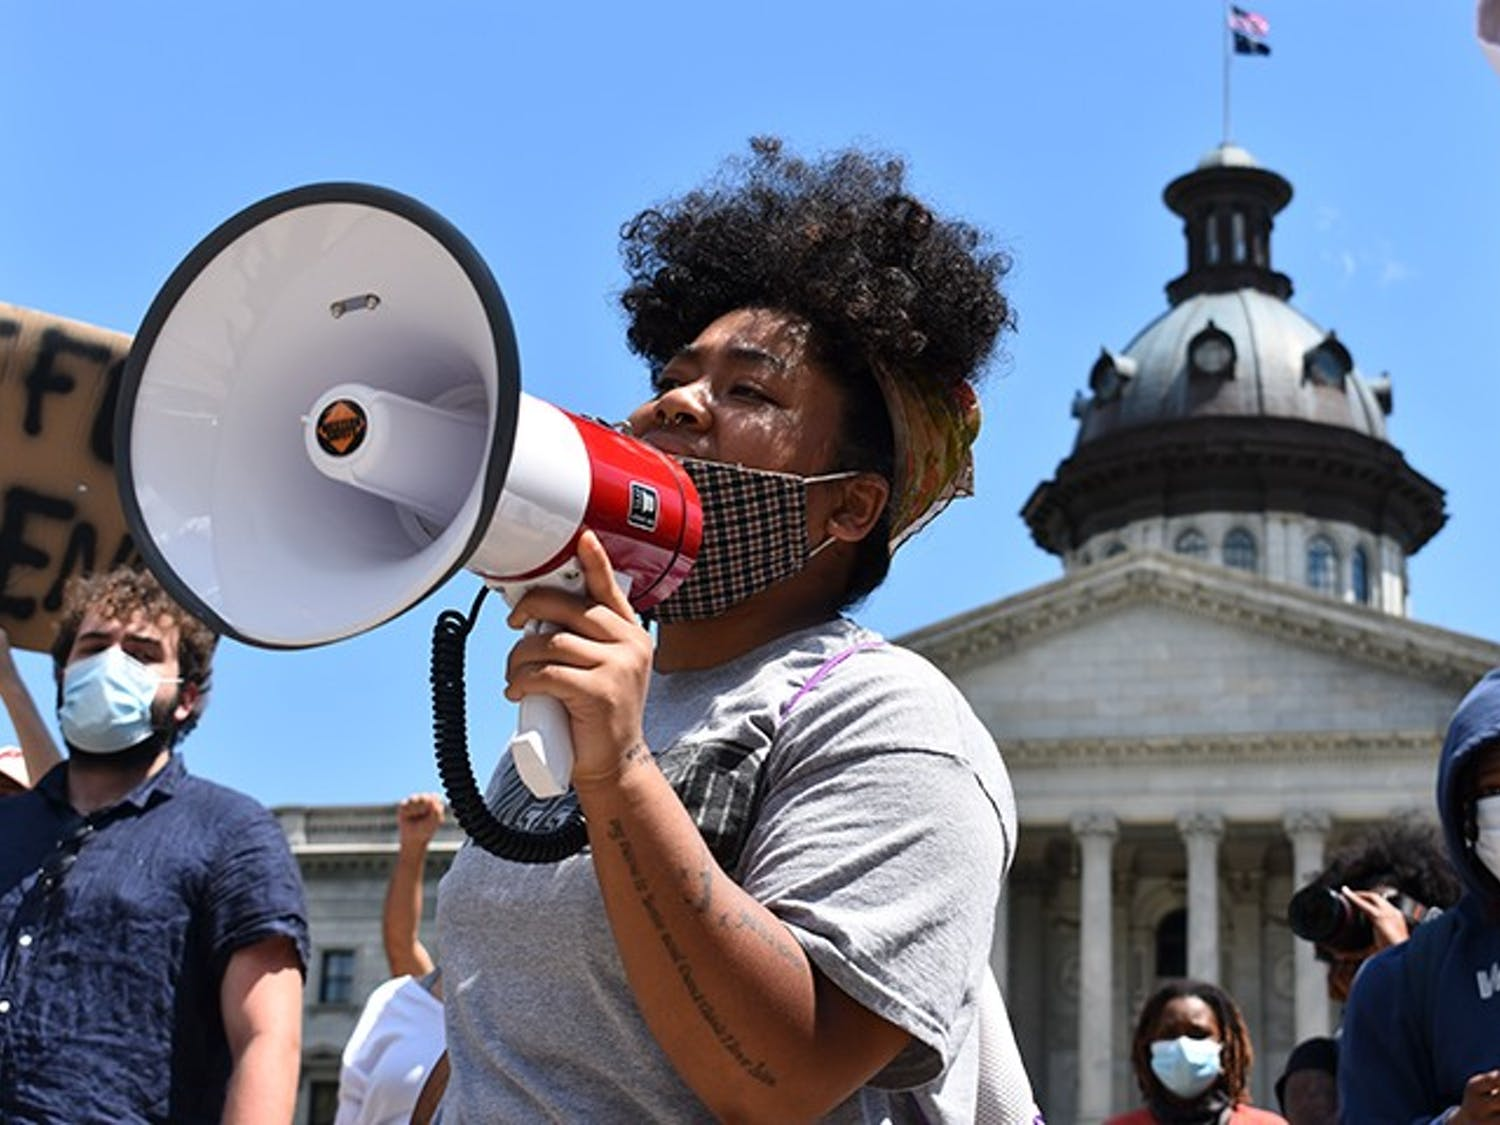 A protester uses a megaphone to lead the crowd in a chant on Monday in front of the Statehouse. The peaceful protesters directed their messages at police officers across the street.